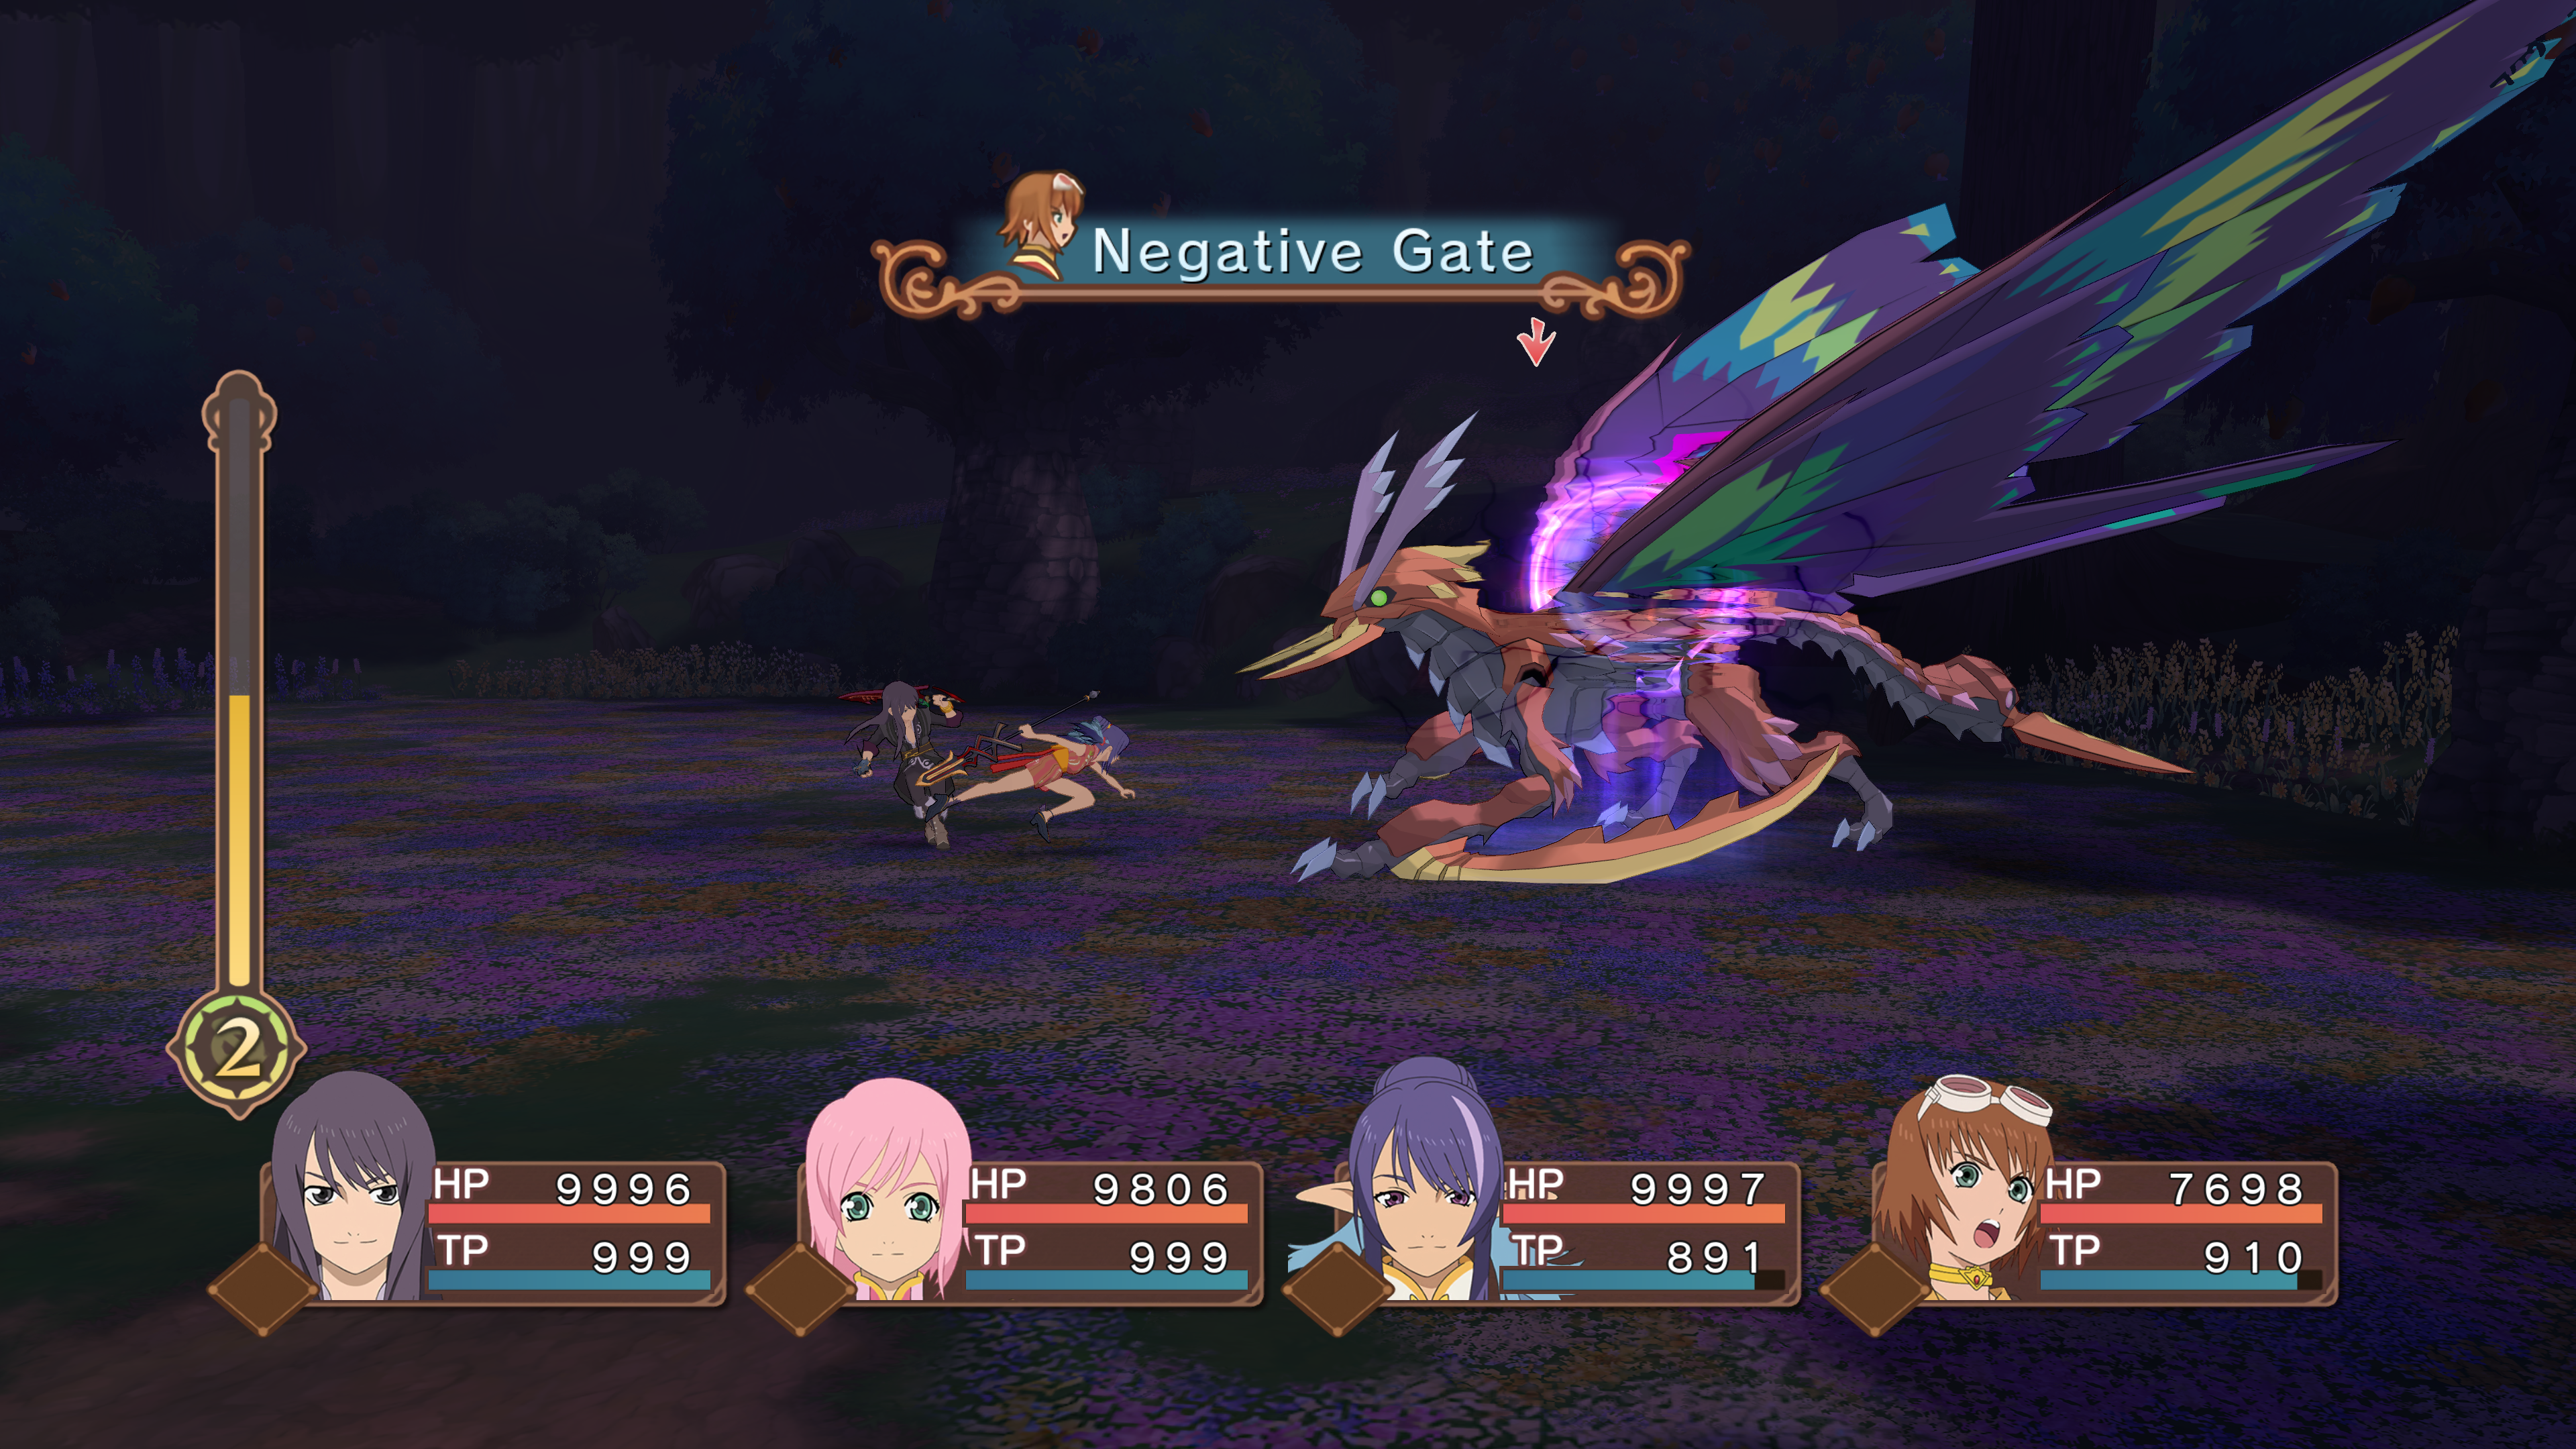 Tales of Vesperia Giganto Monsters Guide: where to find all of the